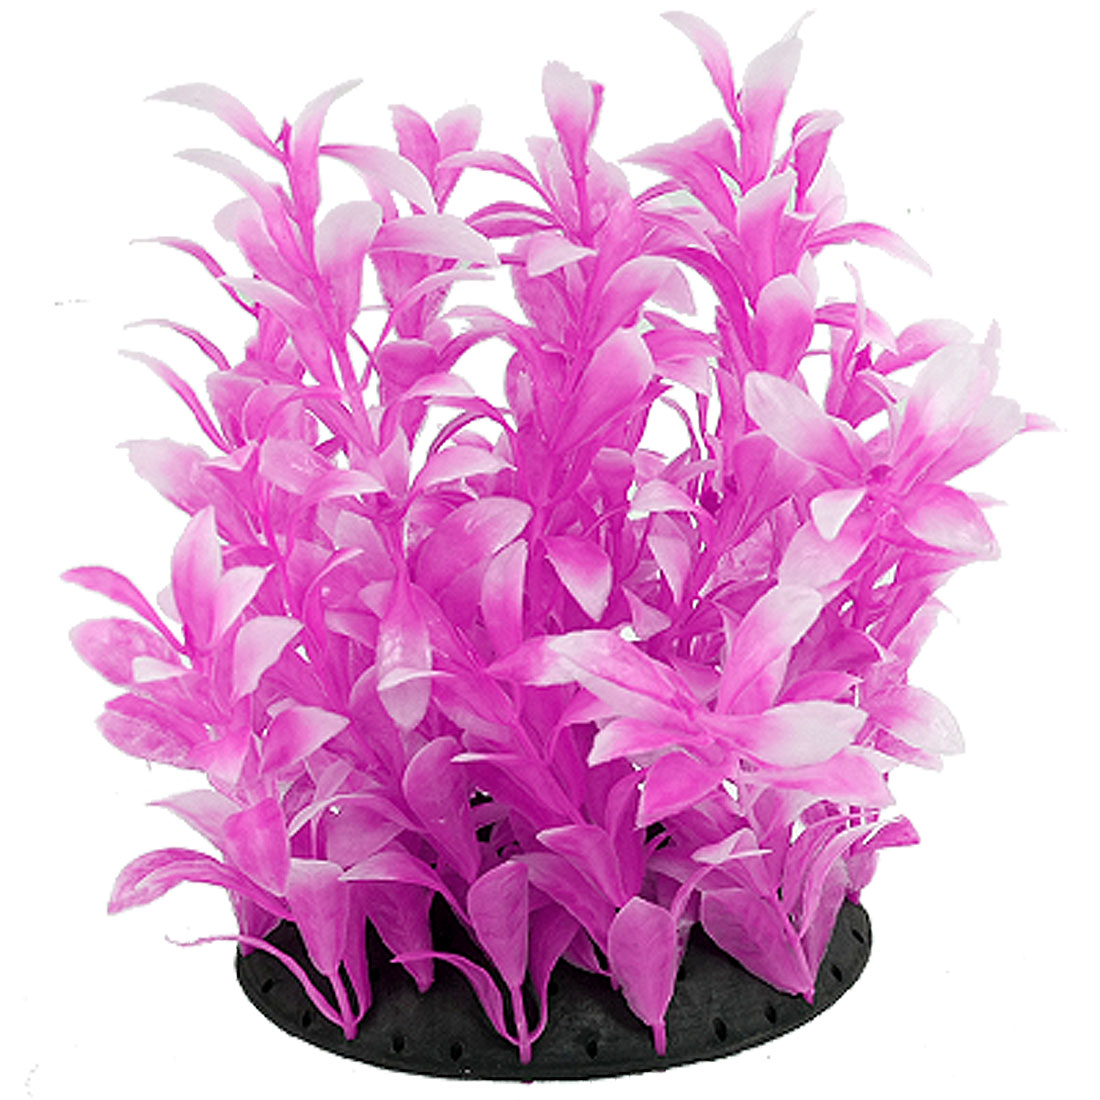 "7"" White Fuchsia Emulational Oval Leaves Plastic Water Plant Fish Tank Aquarium Ornament"